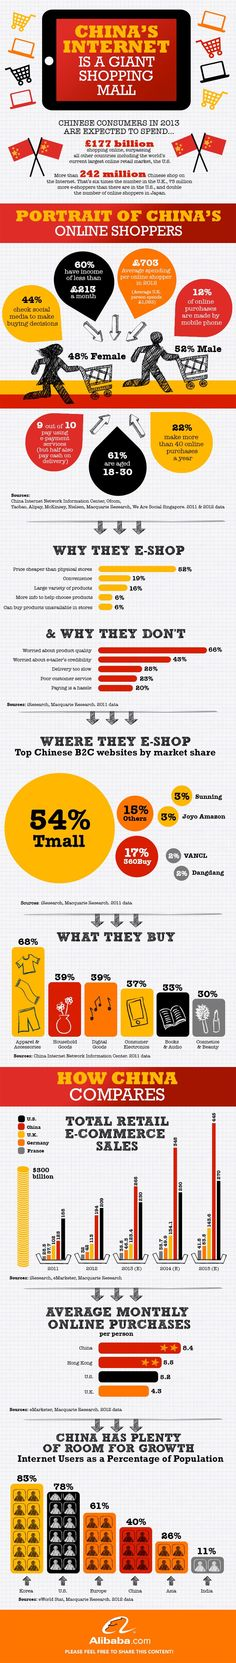 The Ecommerce Boom in China [Infographic] | Get Elastic Ecommerce Blog